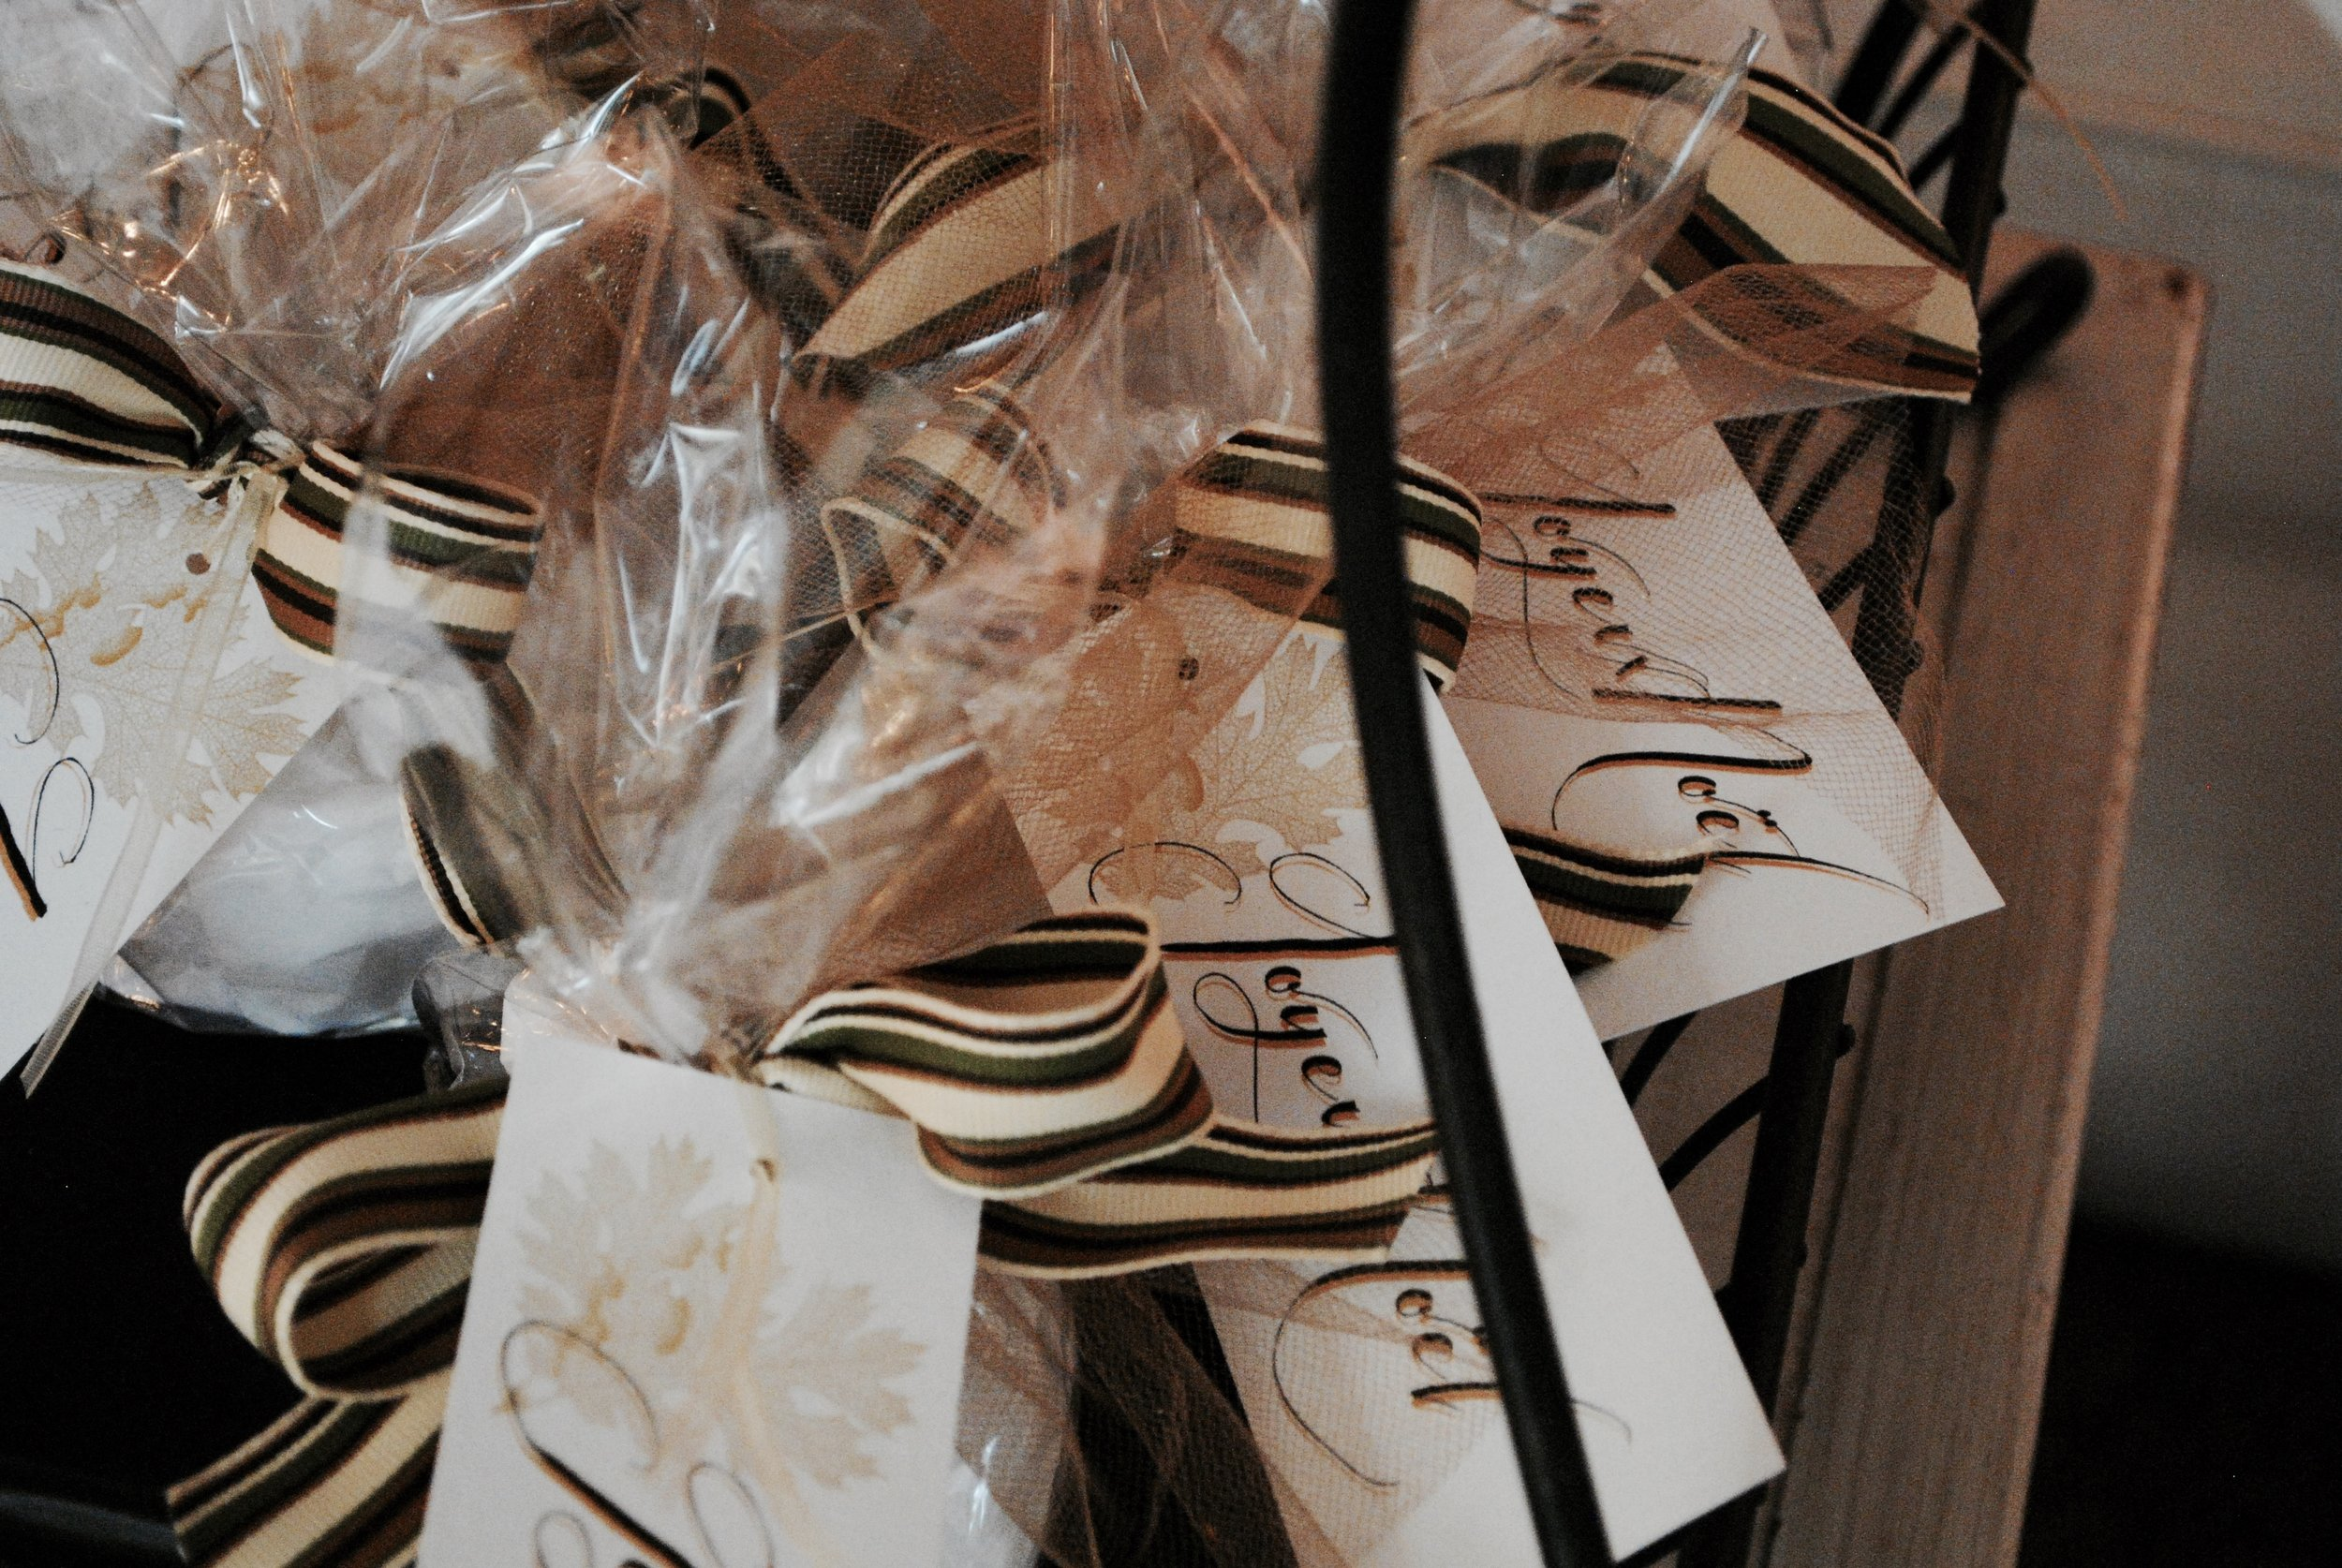 Joyeux Noel! Little packages ready for delivery.